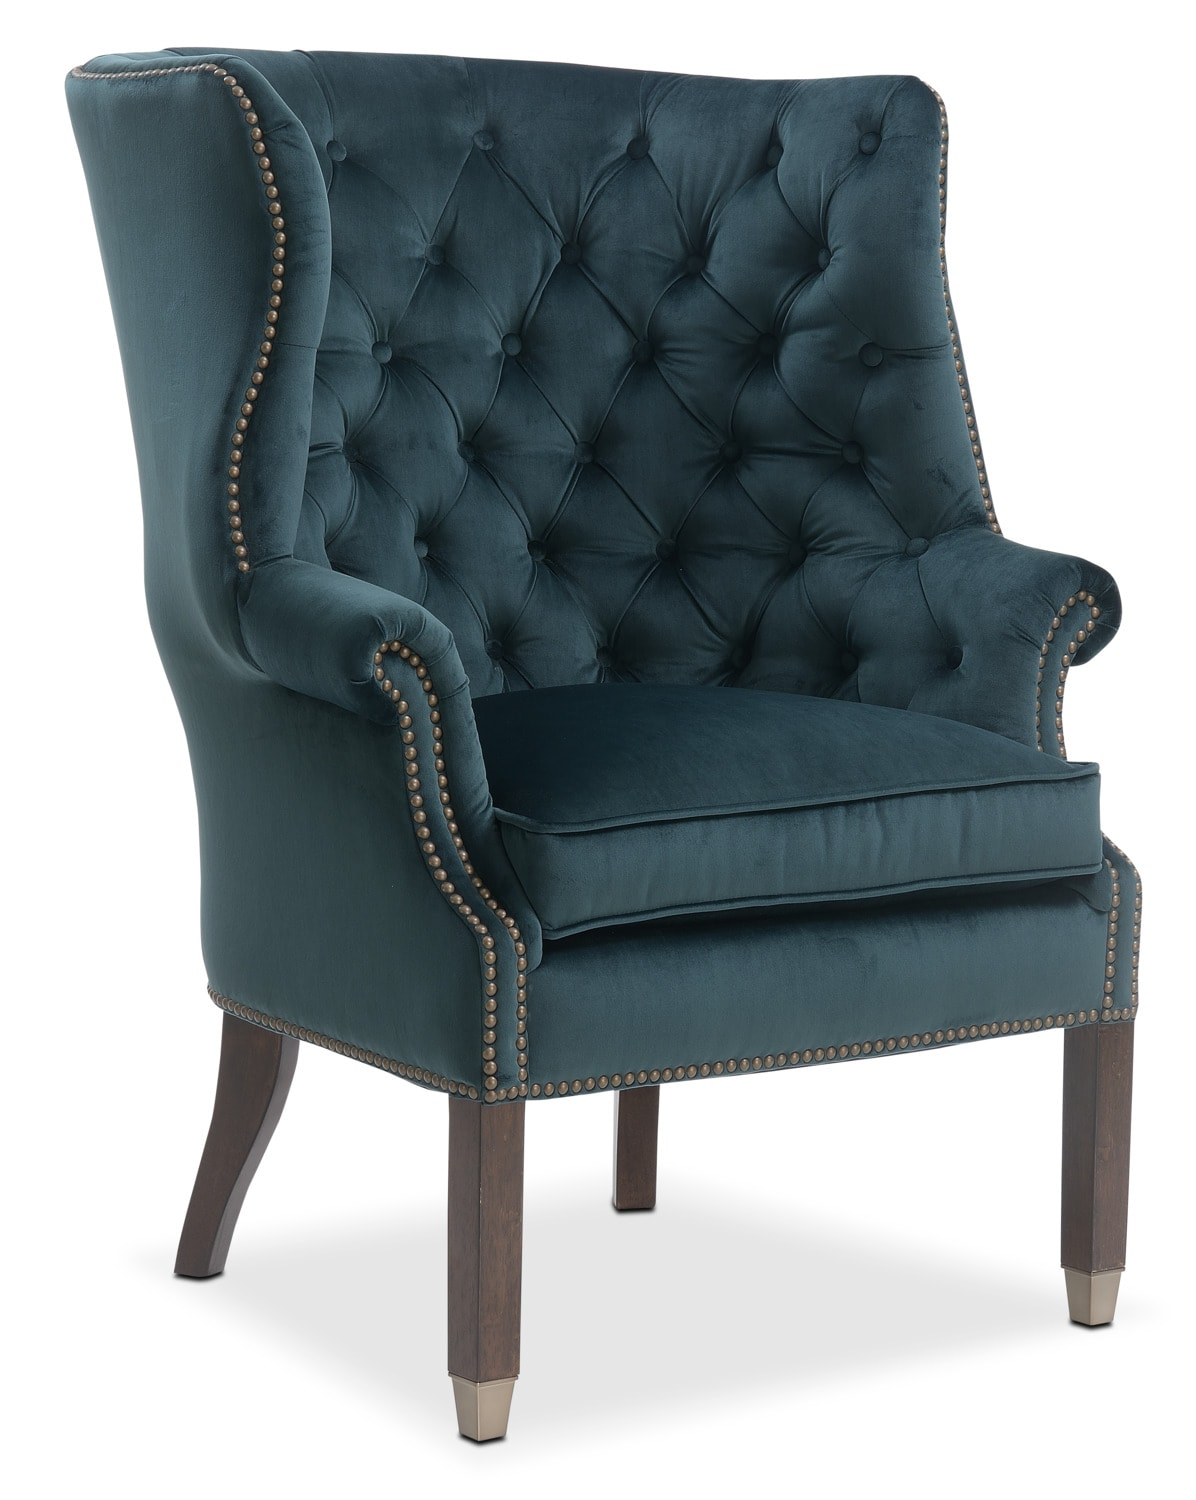 Living Room Furniture - Cranston Accent Chair - Emerald